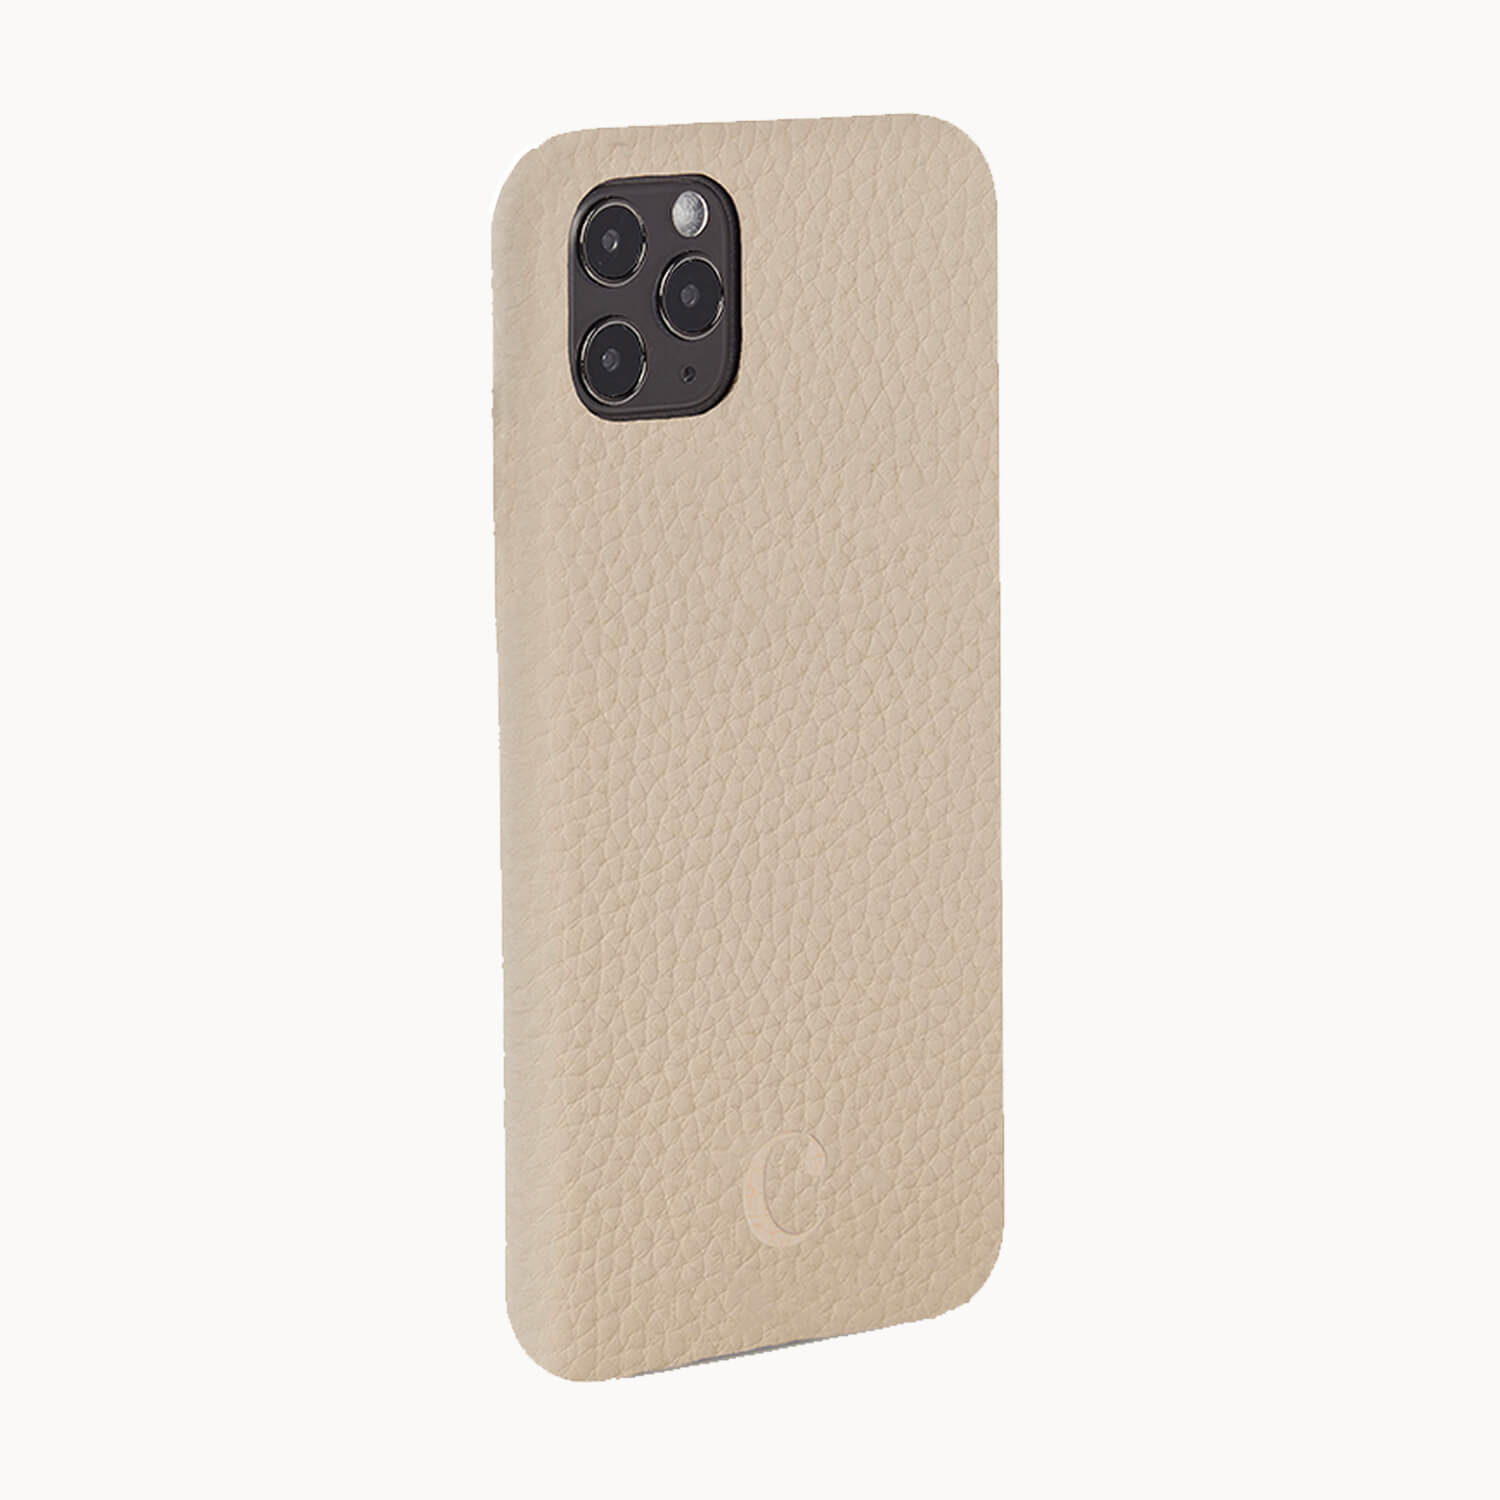 IPHONE 11 PRO ANTIMICROBIAL CASE